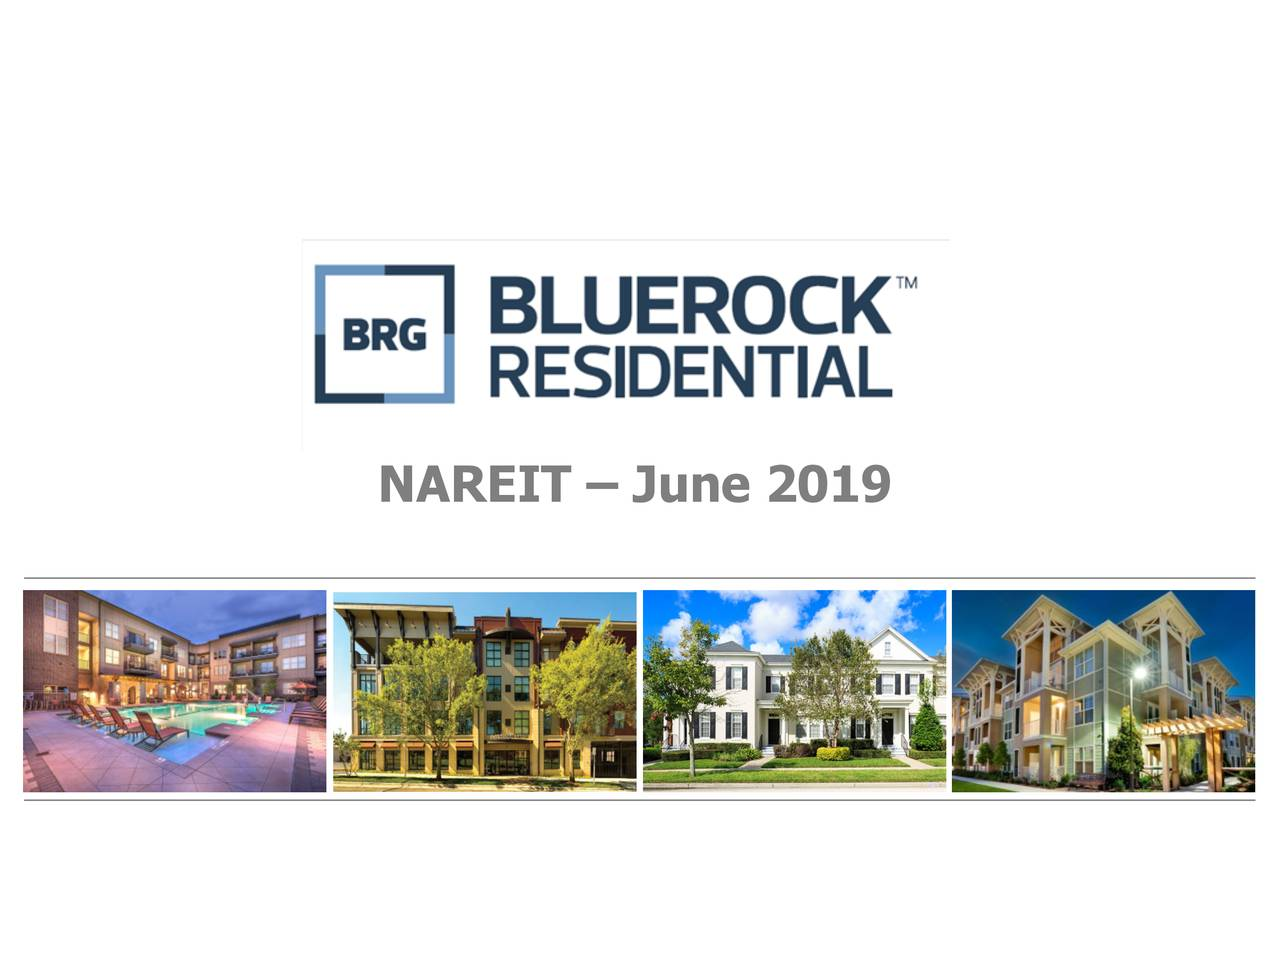 Bluerock Residential Growth REIT (BRG) Presents At NAREIT 2019 Investor Conference - Slideshow